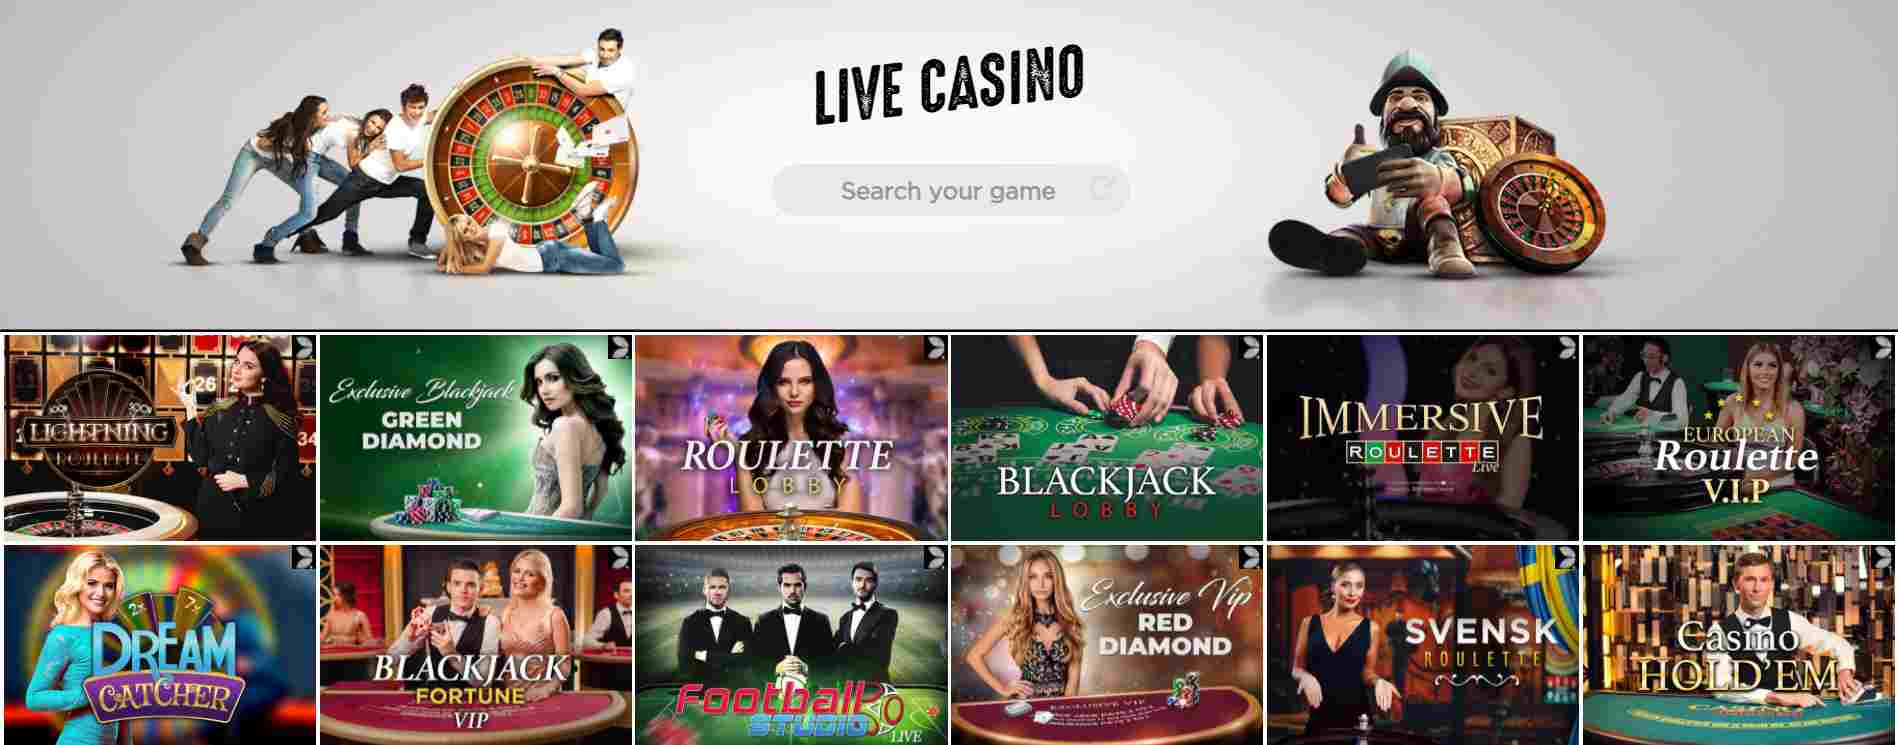 Spinit Casino Live Casino and Table Games